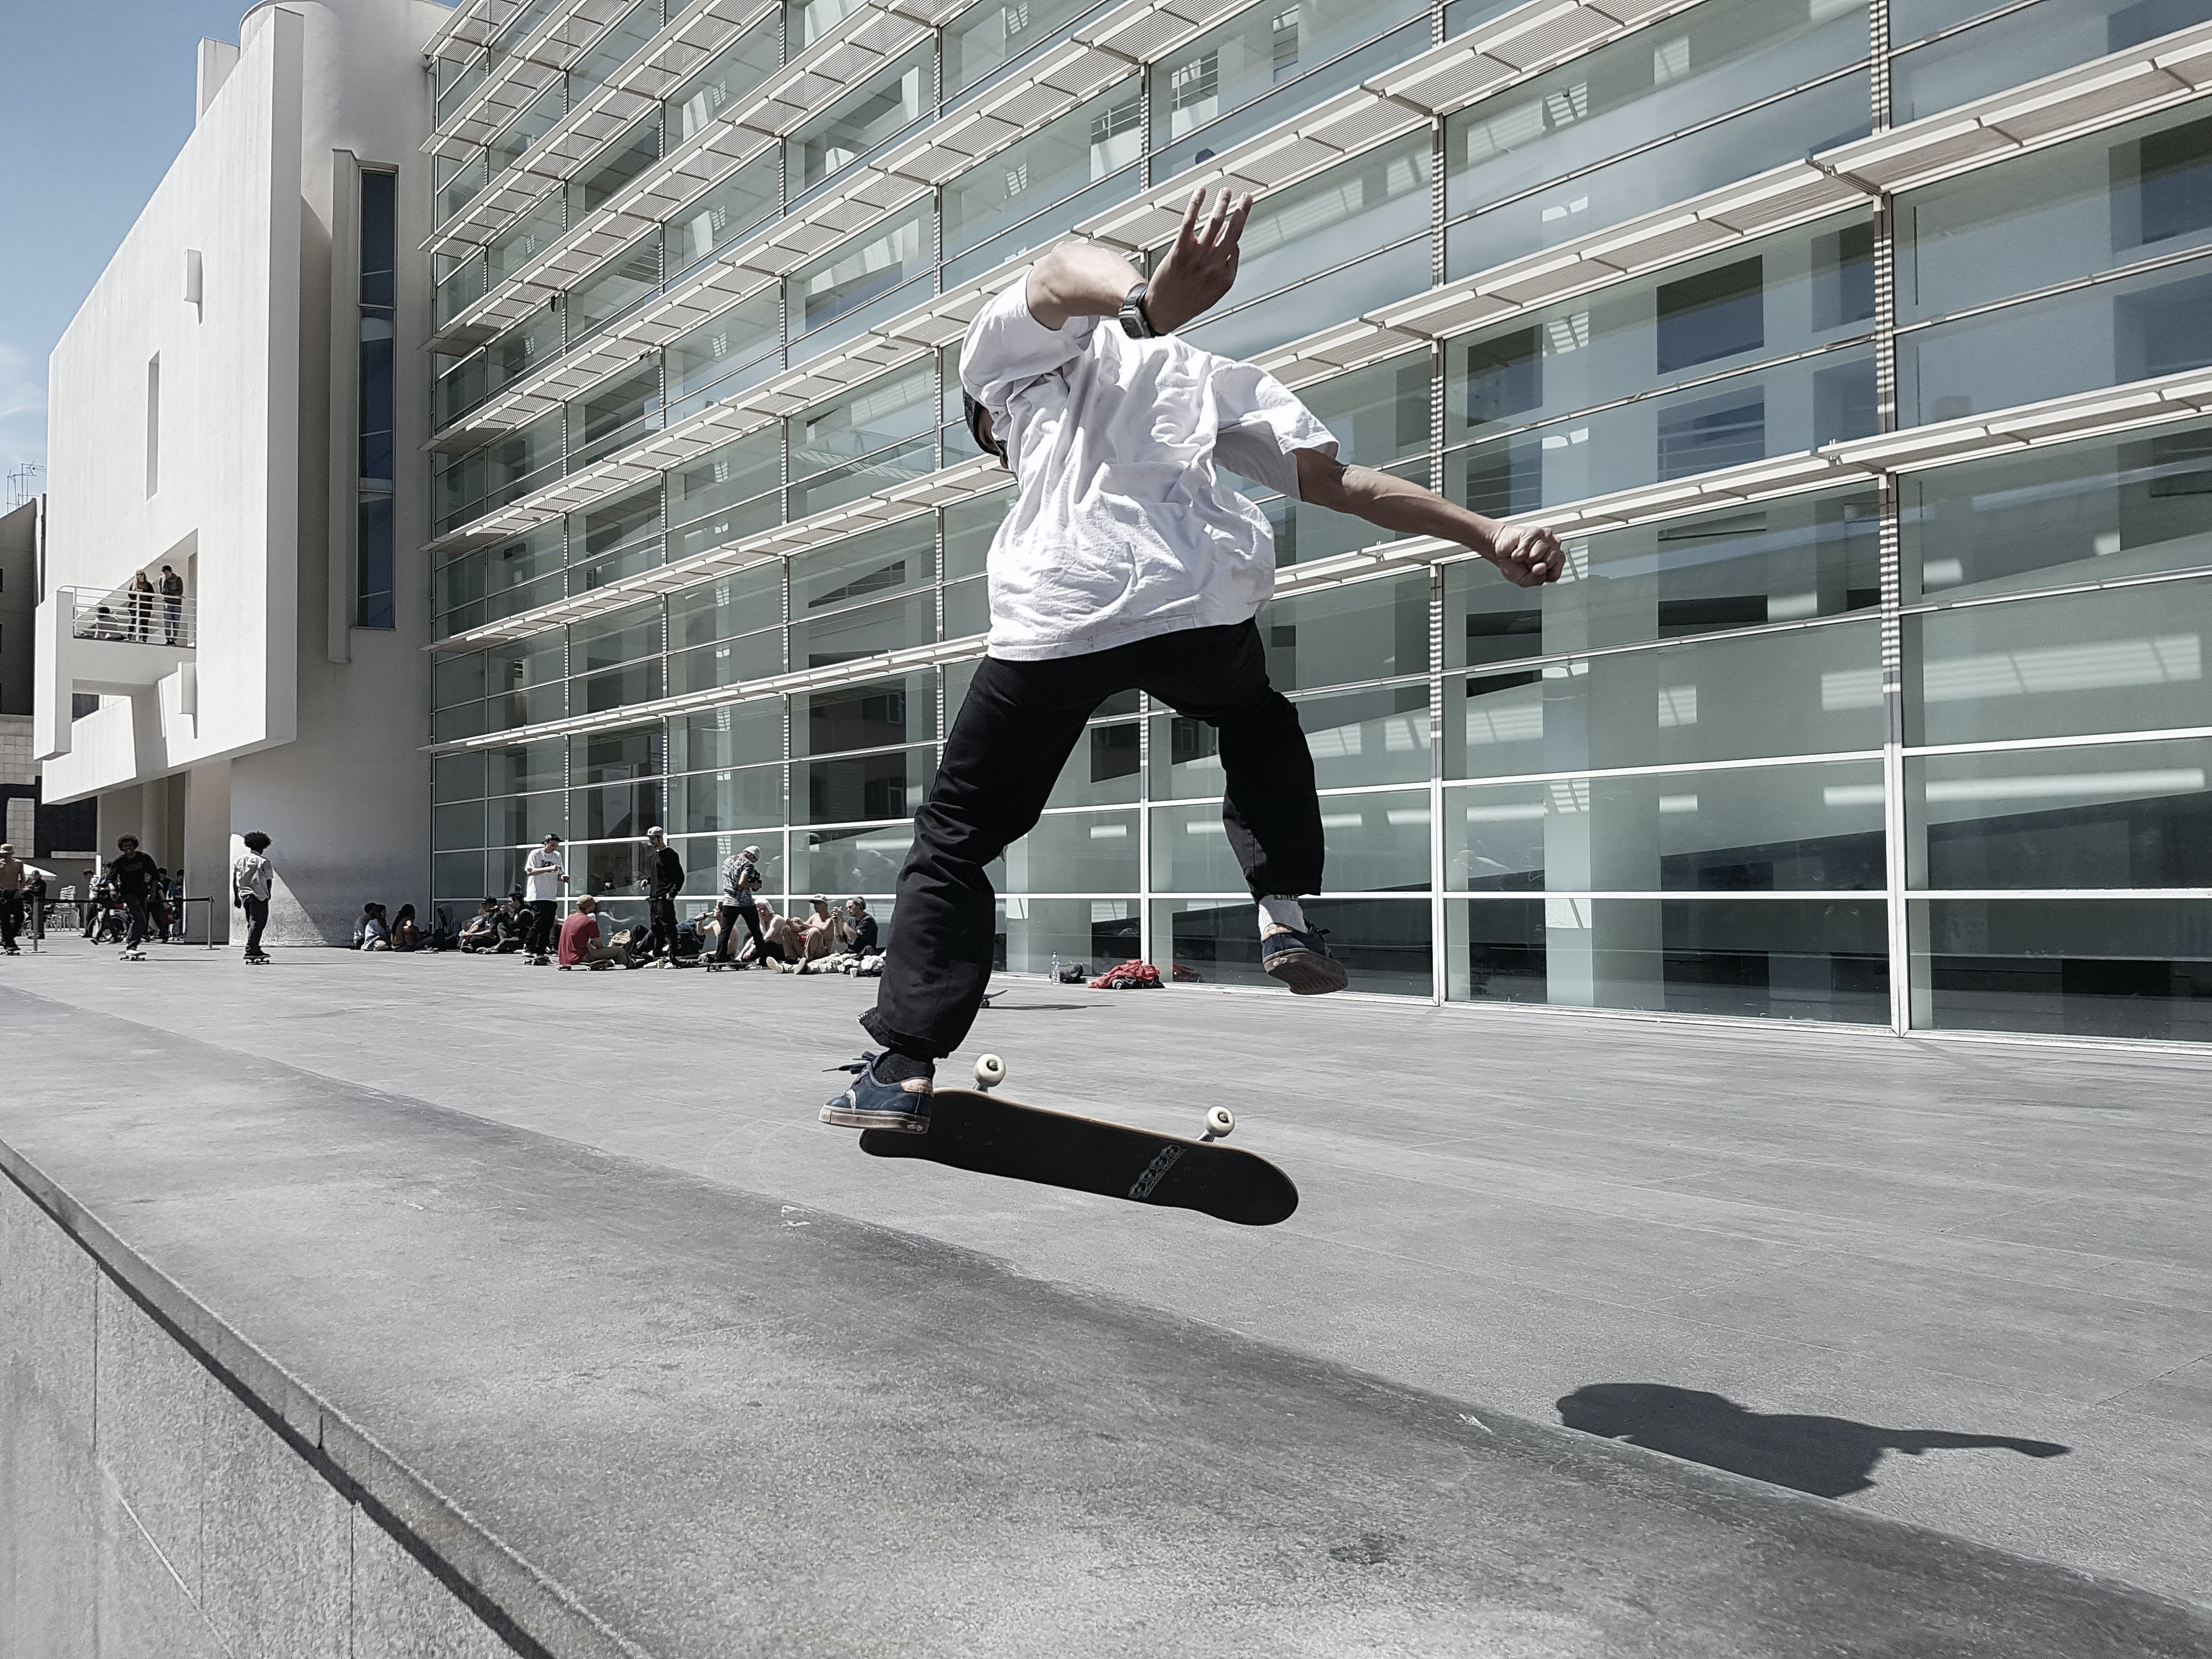 Skater performing trick on concrete pavement during daytime outside Barcelona Museum of Contemporary Art